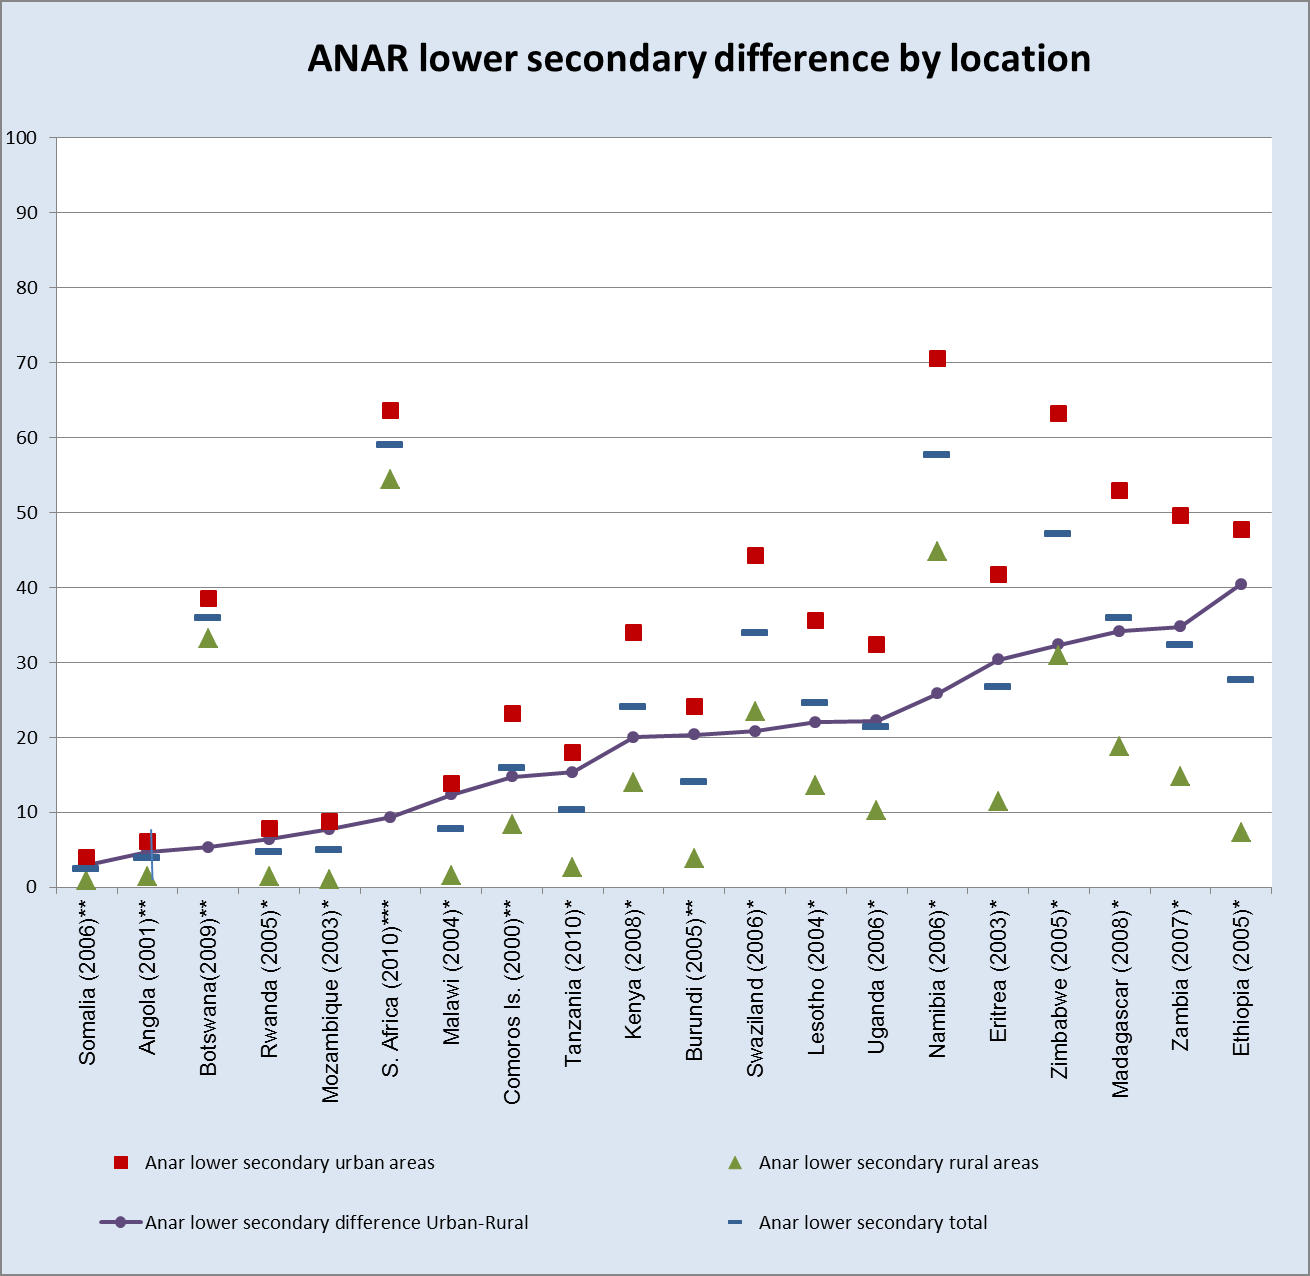 Figure 20: Lower secondary ANAR (differences between urban and rural areas) in ESAR Figure 20: Lower secondary ANAR (differences between urban and rural areas) in ESAR Source: Own calculation based